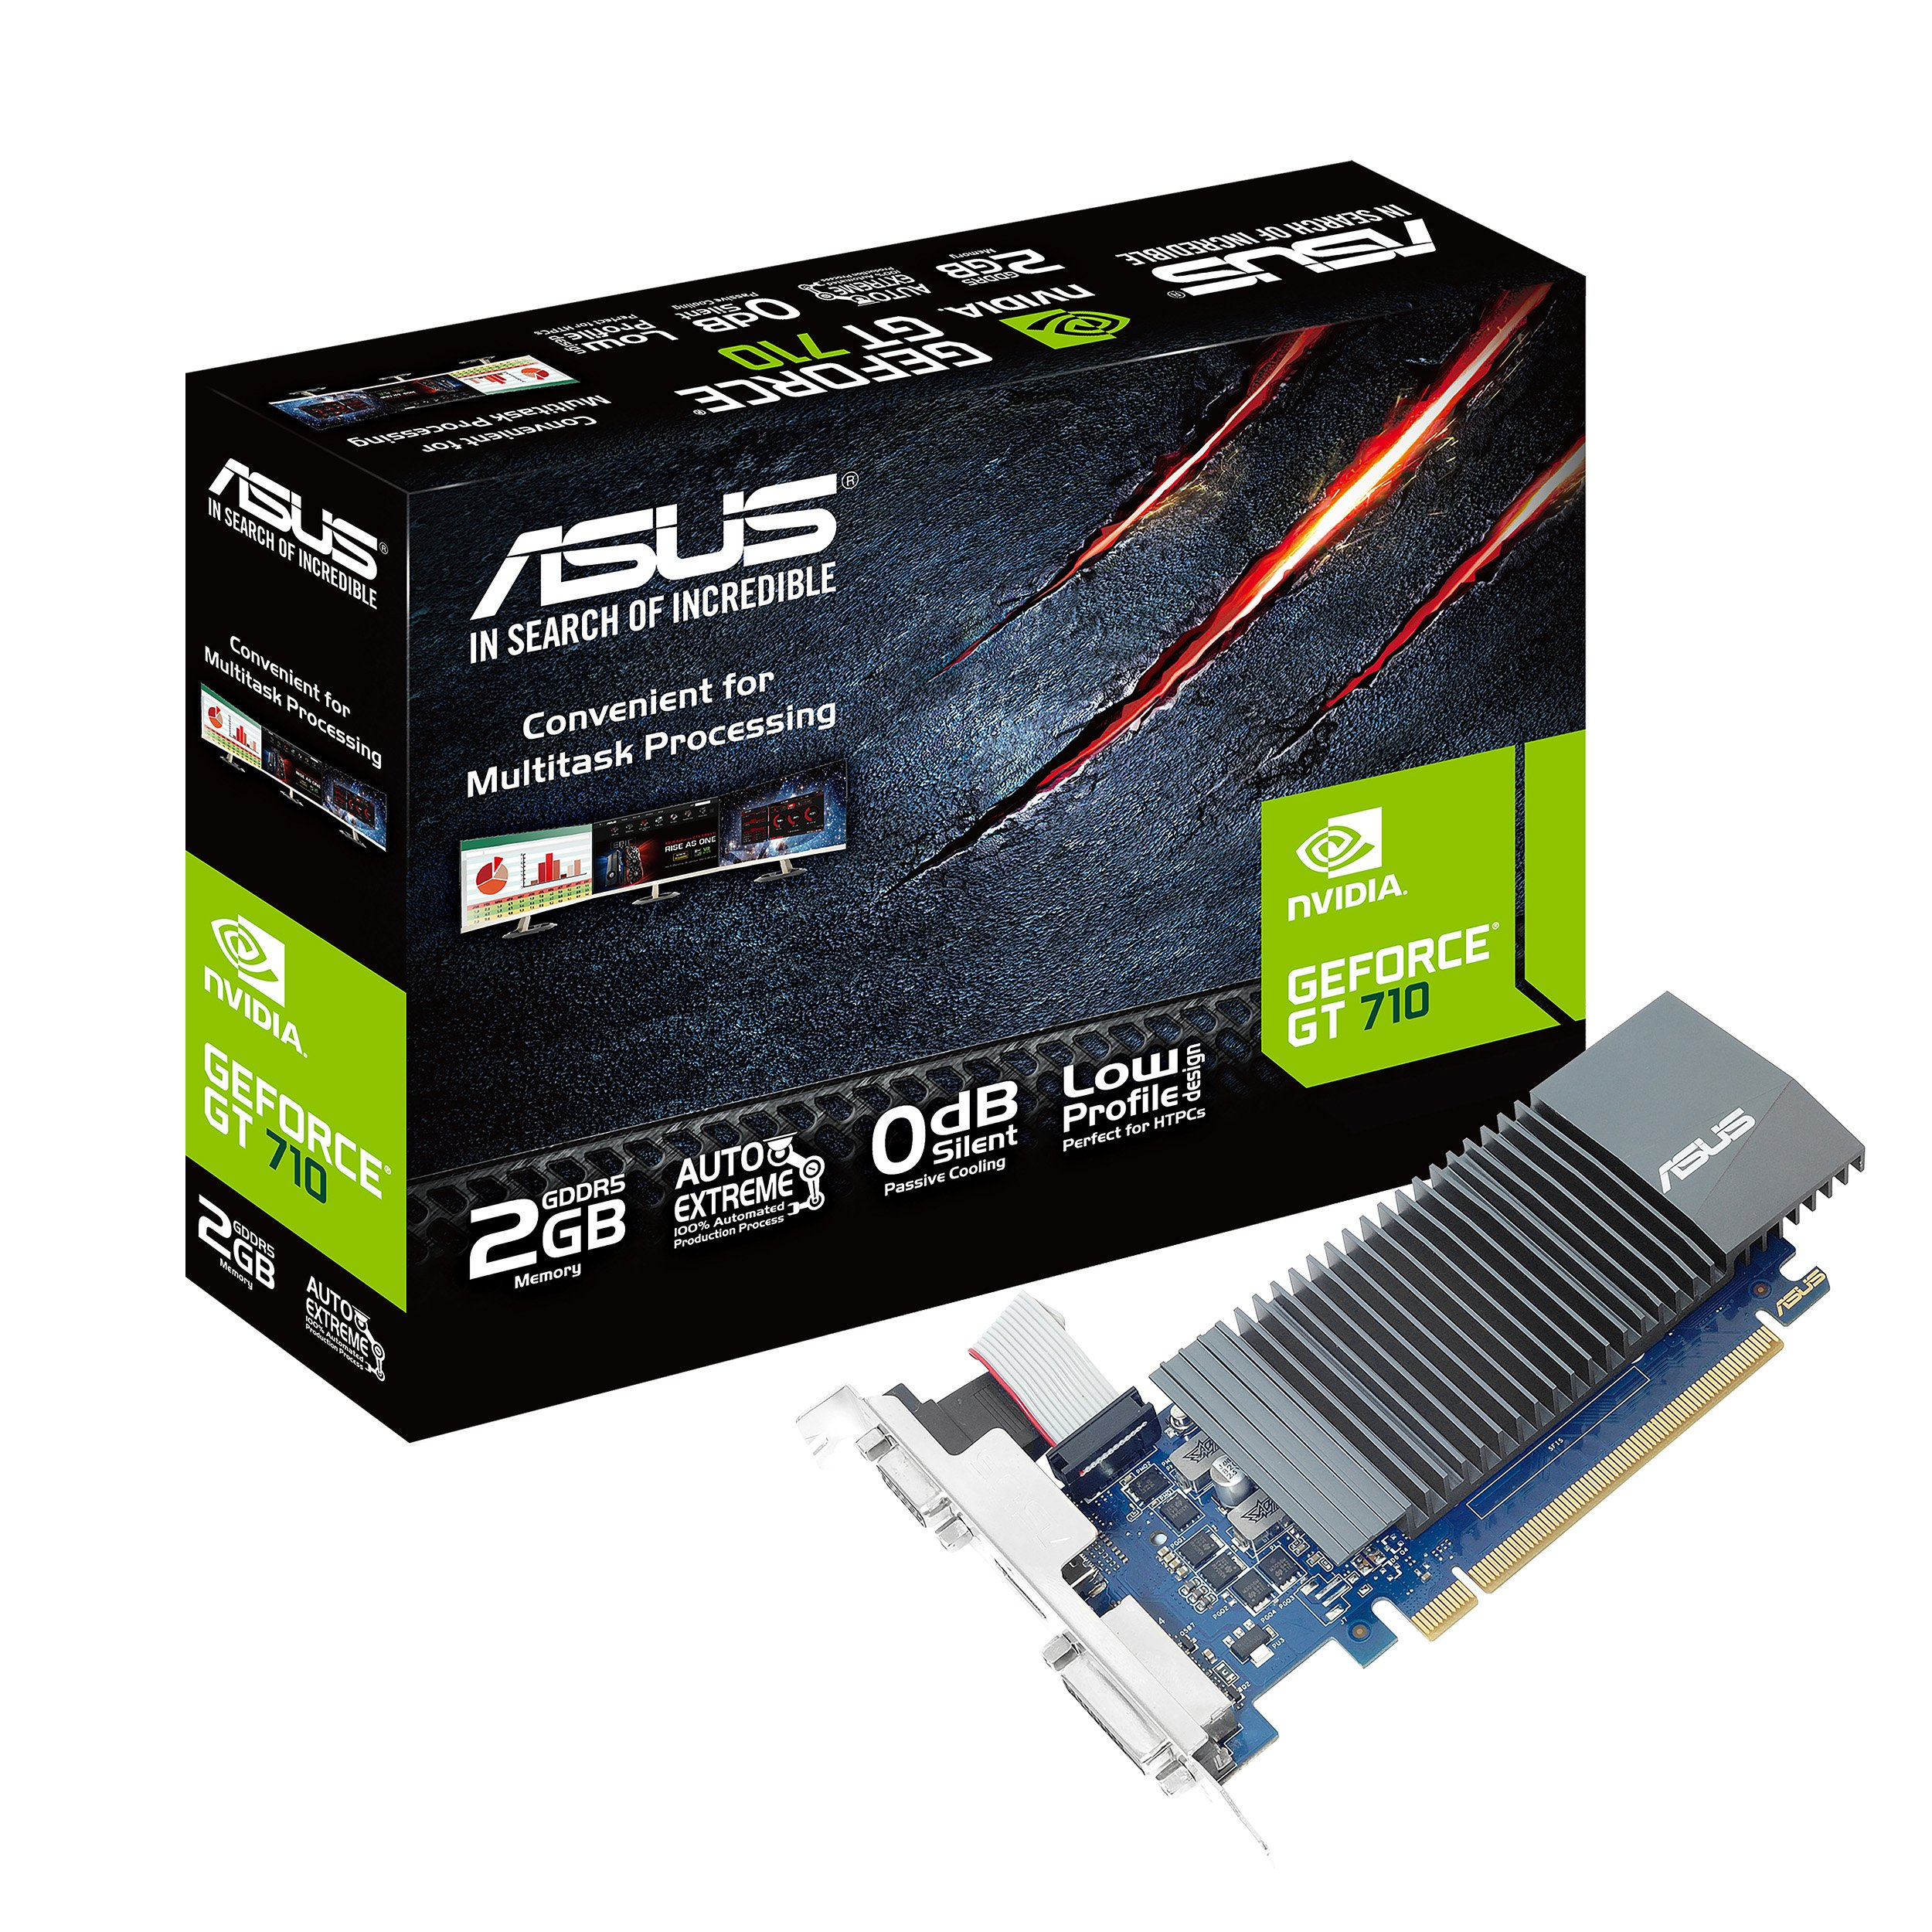 Asus GeForce GT 710 2GB GDDR5 HDMI VGA DVI Graphics Card Graphic Cards GT710-SL-2GD5-CSM by ASUS